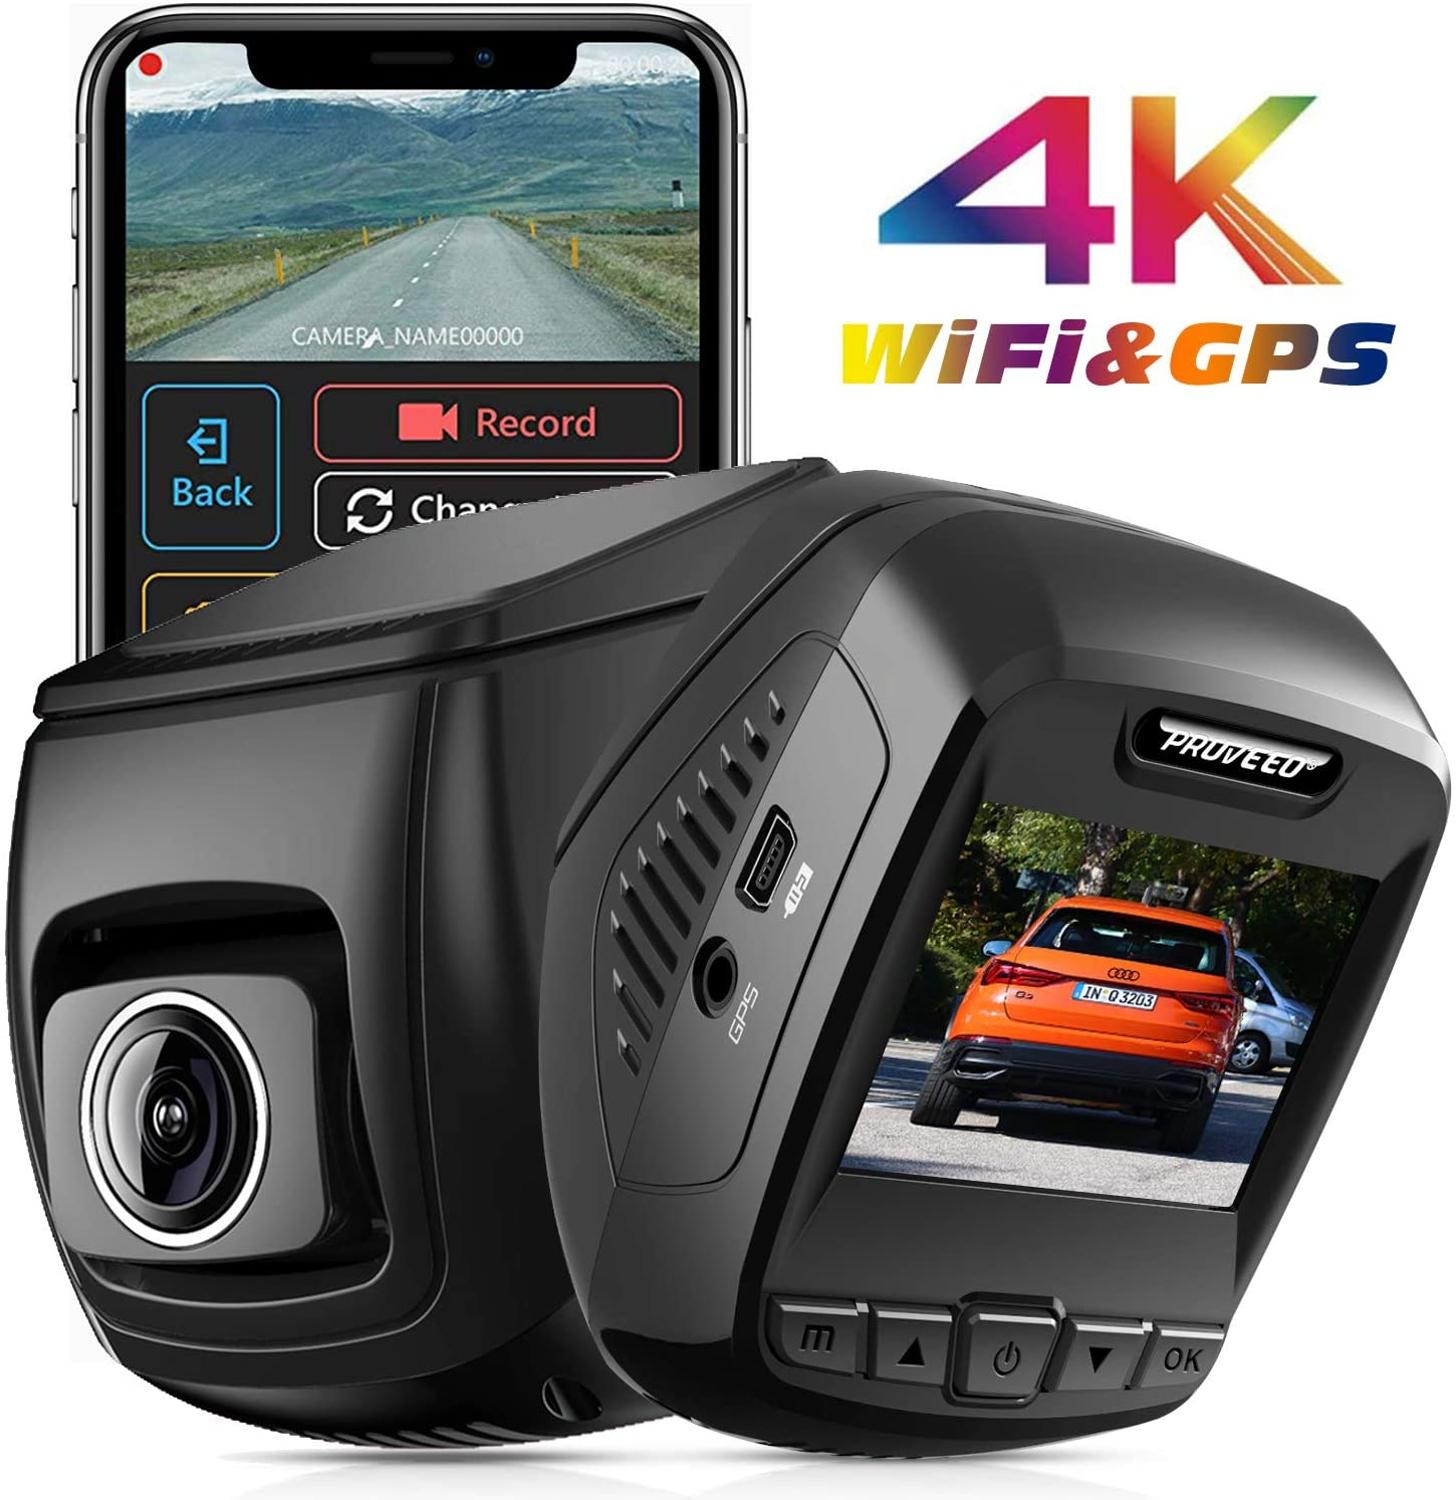 Pruveeo T7 <font><b>4K</b></font> Dash Cam Built in WiFi GPS, UHD 2160P Dash Camera for <font><b>Cars</b></font>, Wide Angle, Supercapacitor, image